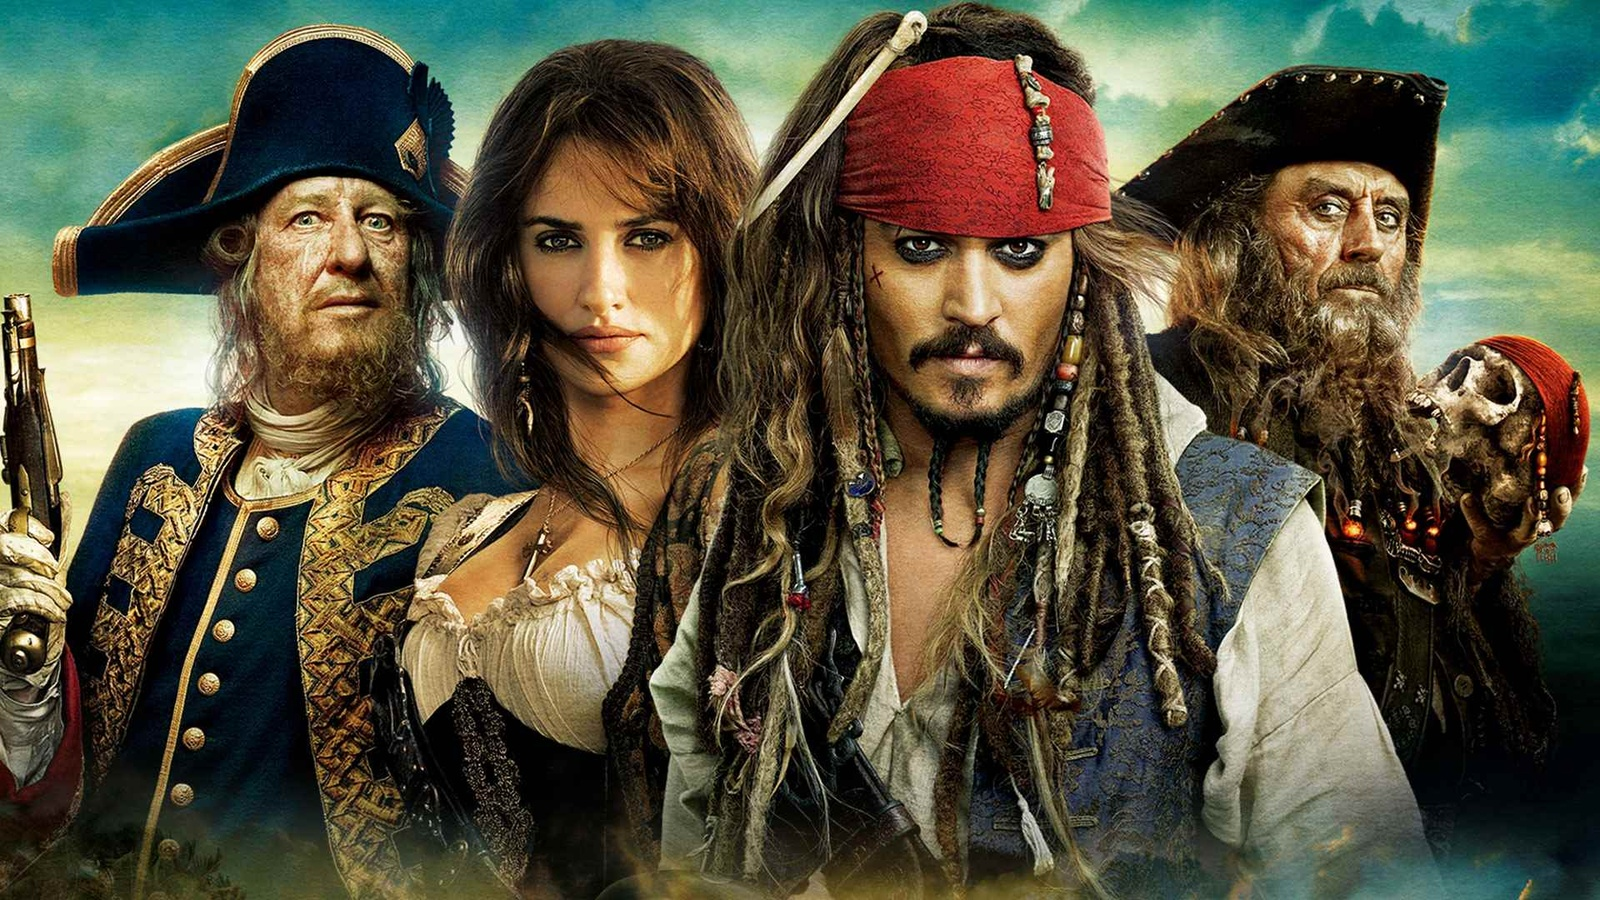 Пираты Карибского моря: На странных берегах / Pirates of the Caribbean: On Stranger Tides background